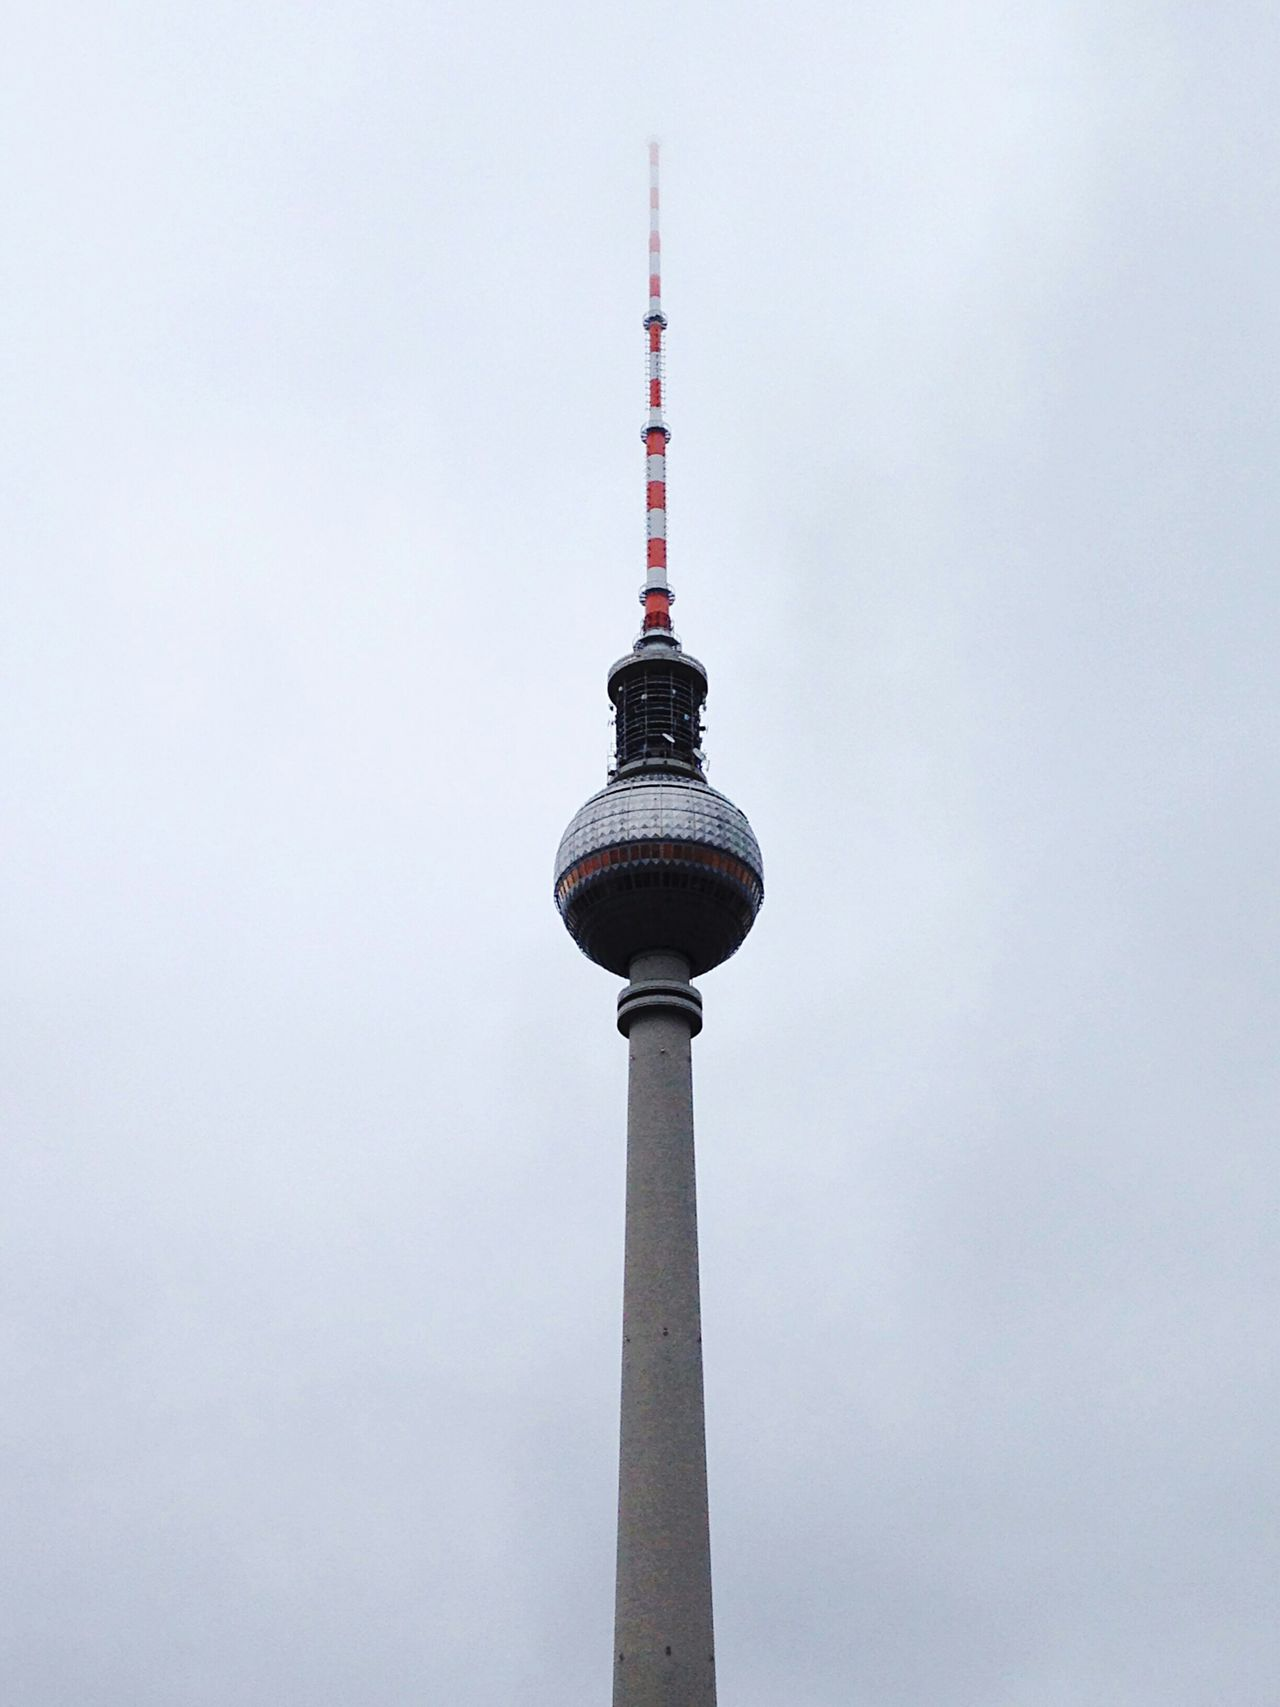 Classy Same Ol Same Ol Fernsehturm / Tv Tower Foggy Weather My Fucking Berlin Open Edit Architecture